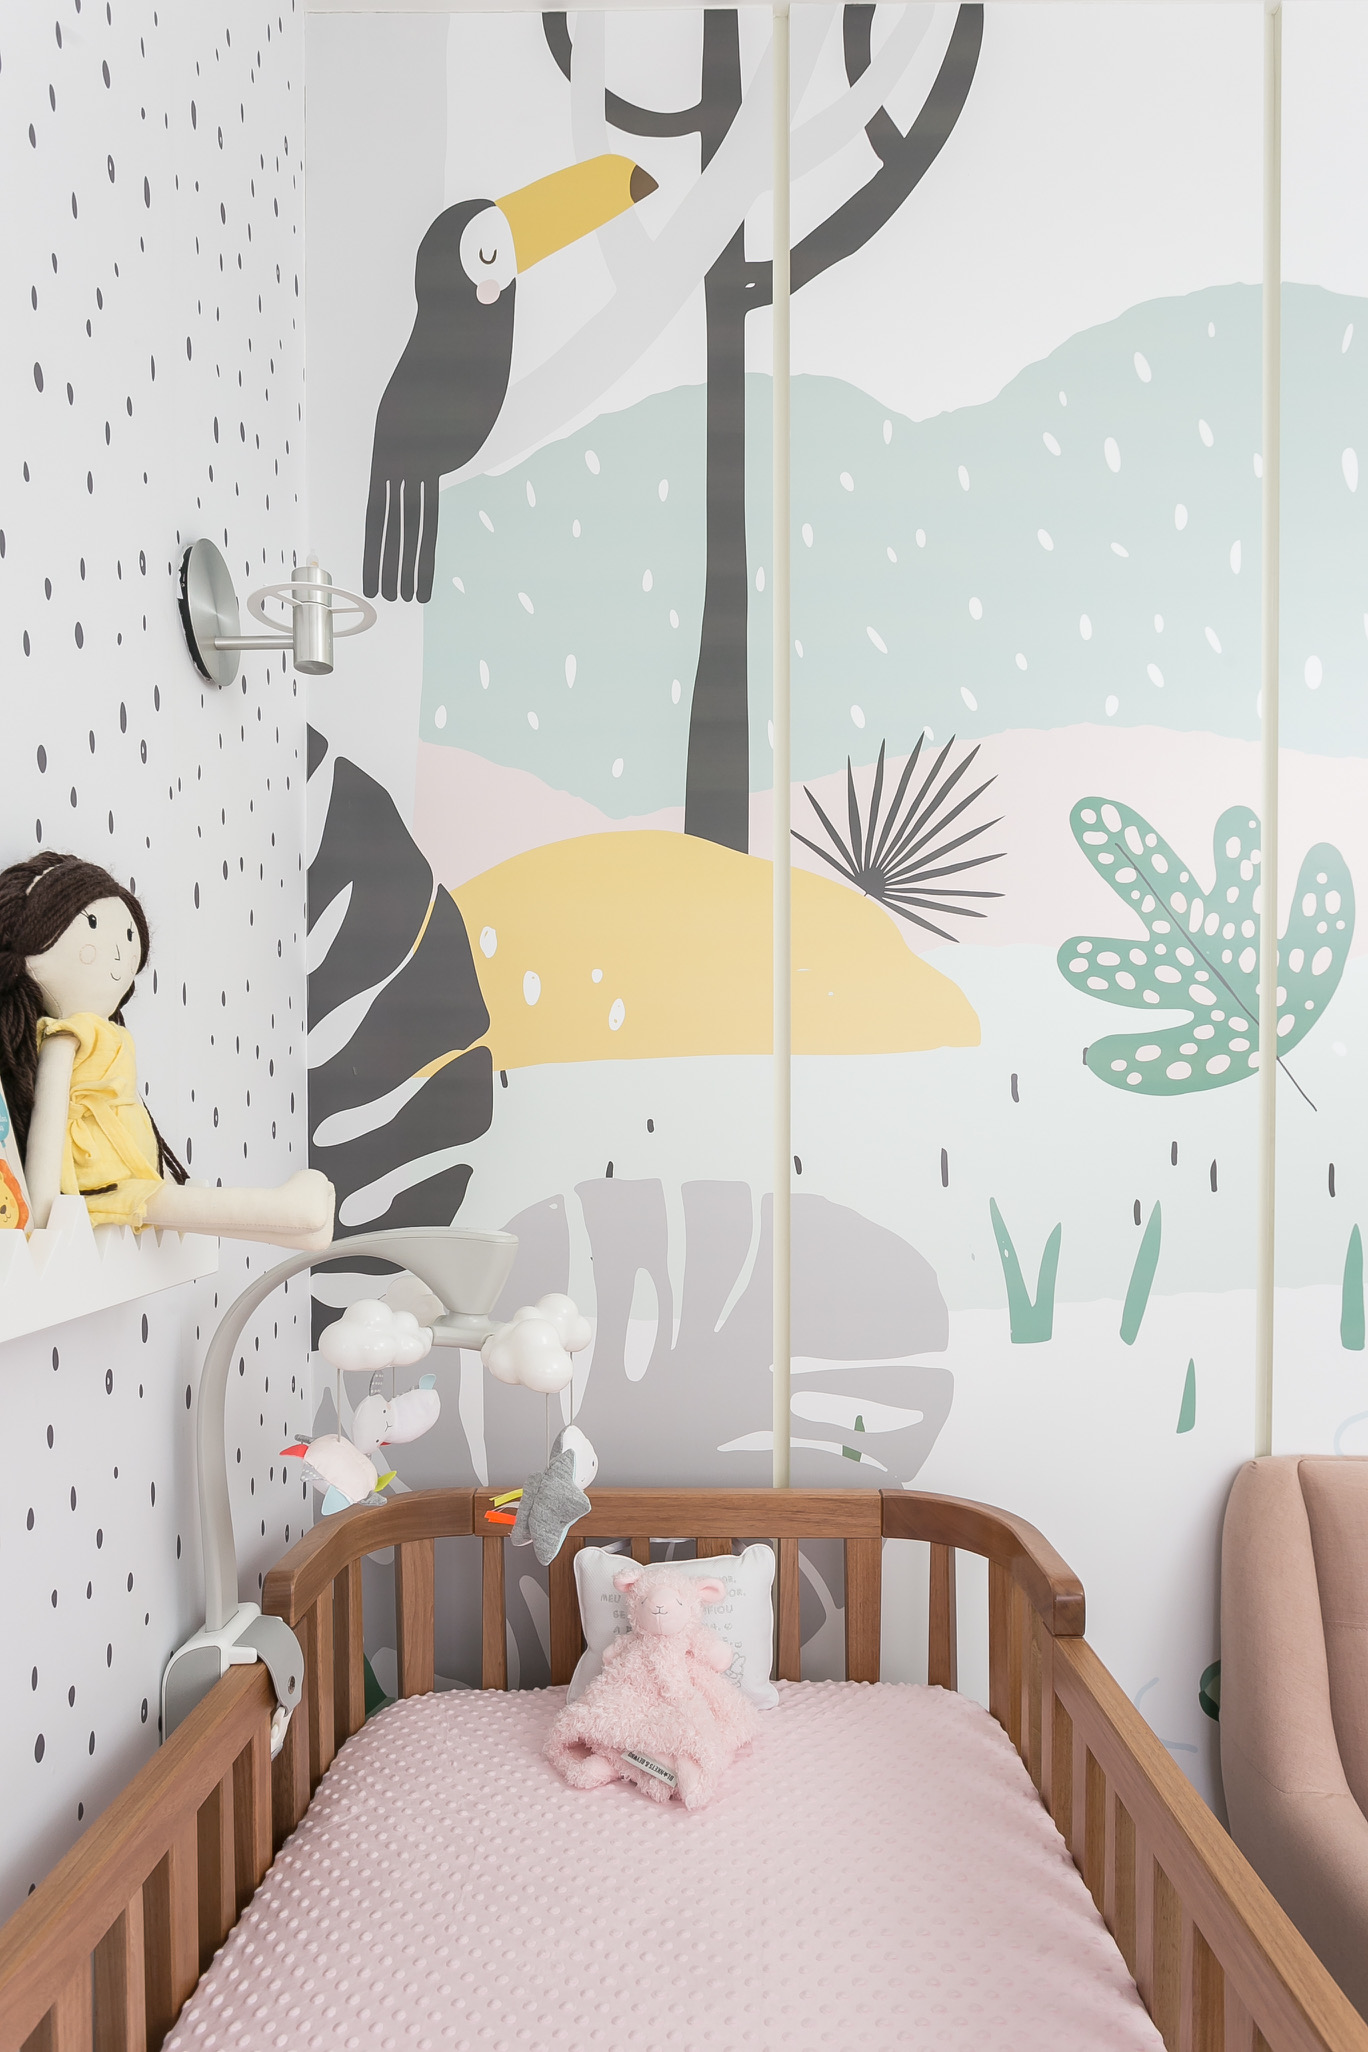 IMG 5703 - A Beautiful Baby Girl Bedroom, by Luiza Souza from Vogue